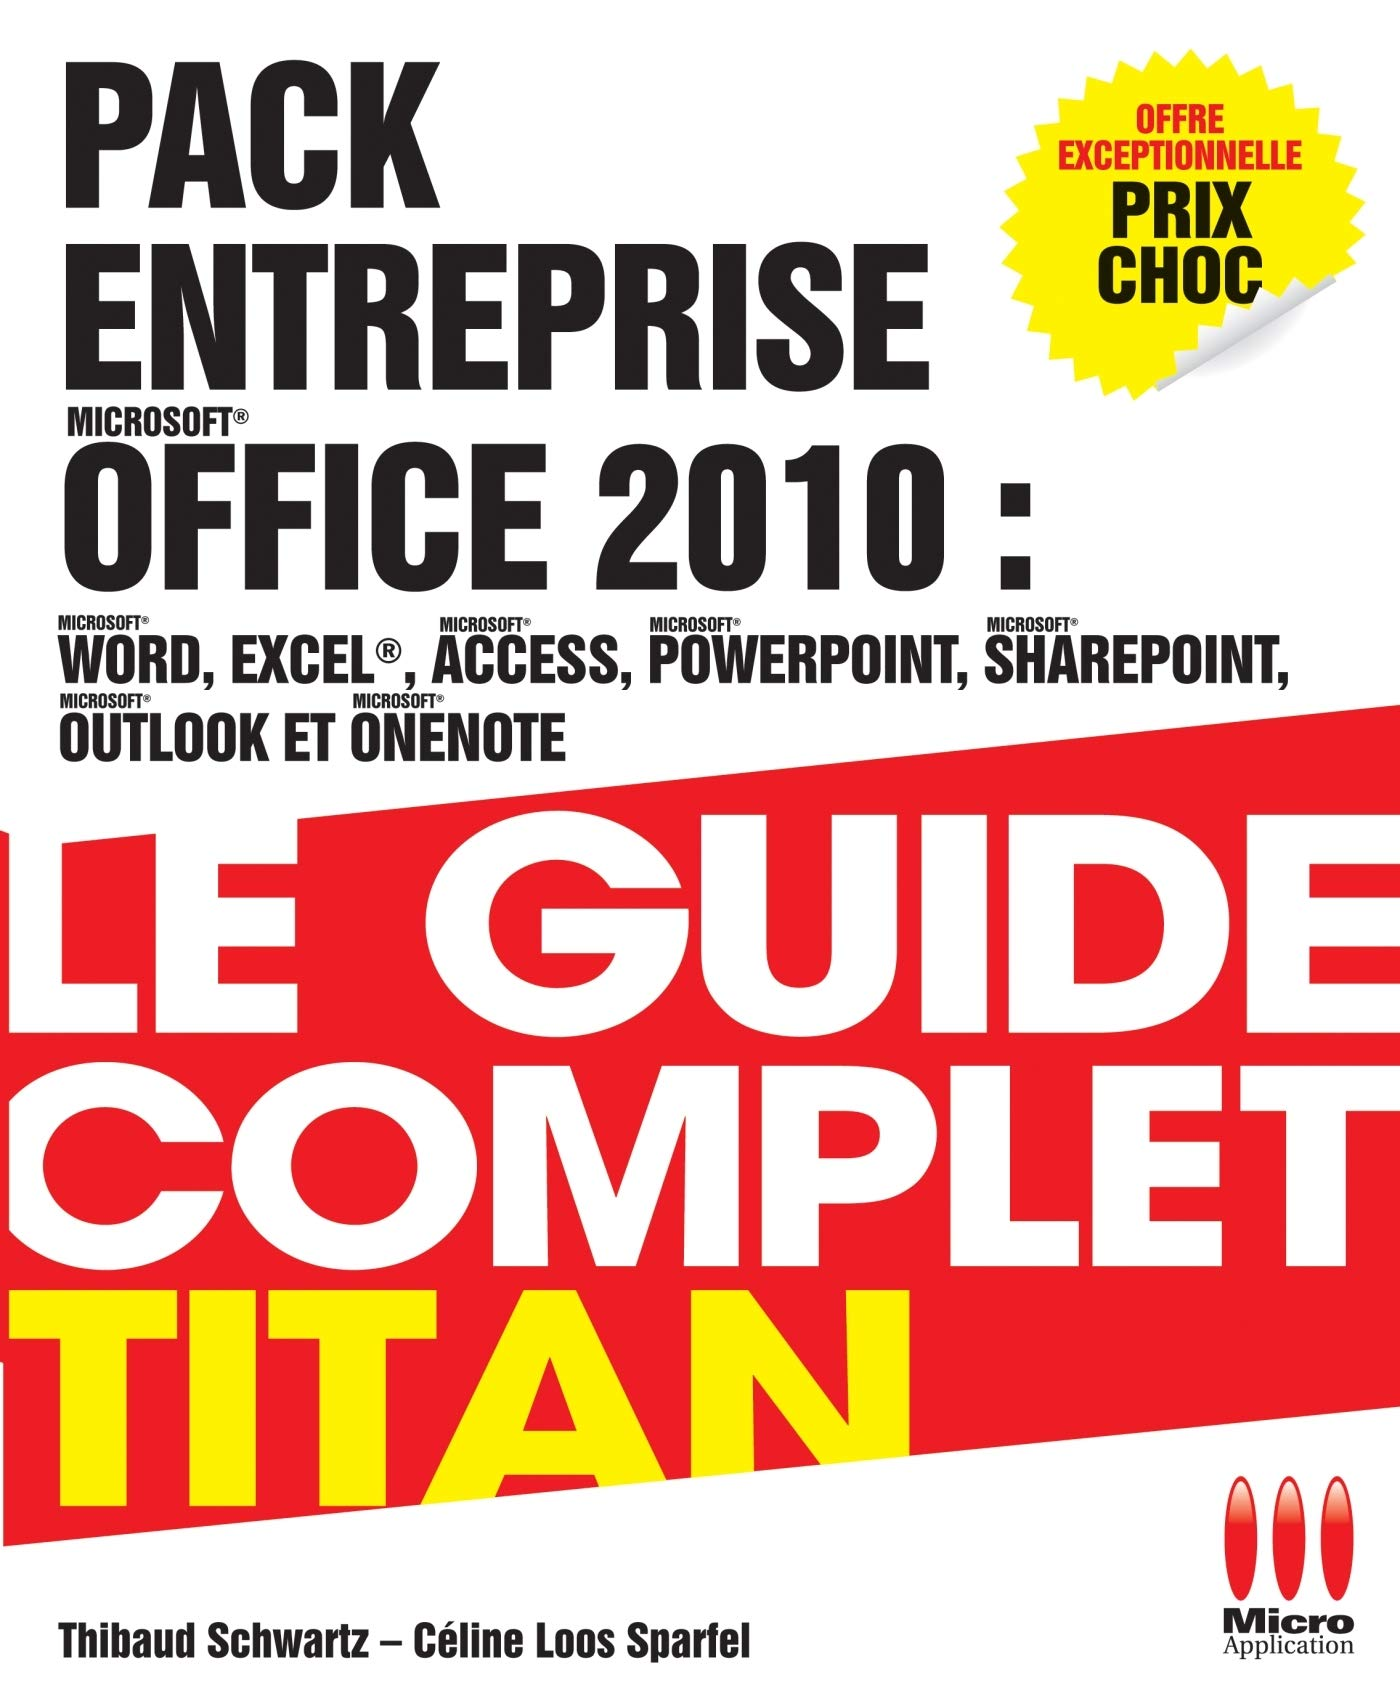 TITAN PACK ENTREPRISE OFFICE 2010 (ESK.TITAN): Amazon.es: Collectif: Libros en idiomas extranjeros